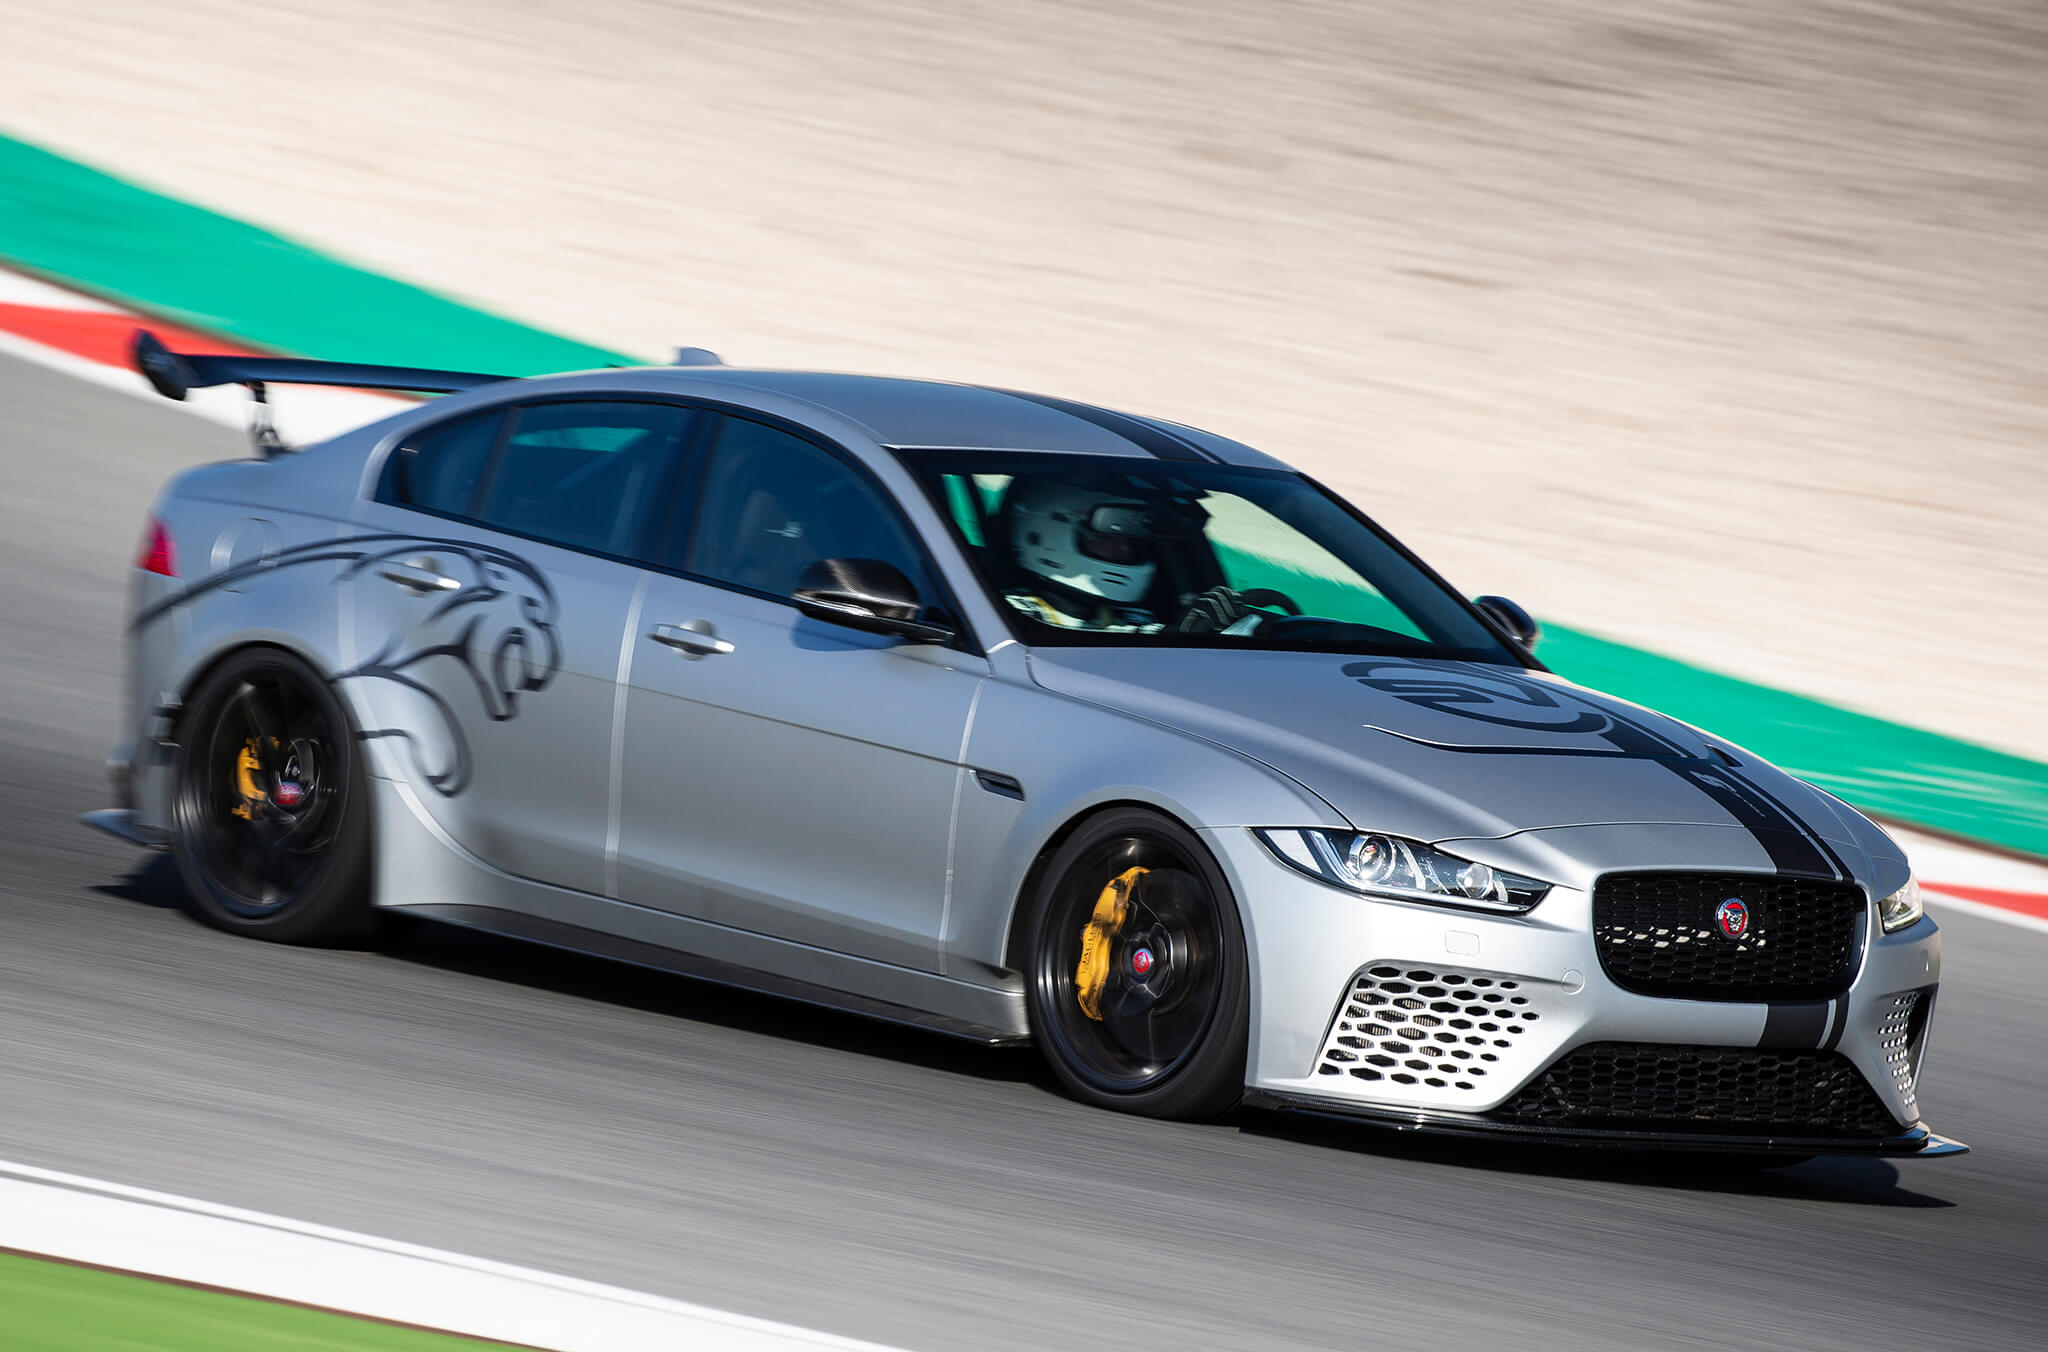 Jaguar Xe Sv Project 8 Jaguar Xe Sv Project 8 Testei A Berlina Mais Rápida Do Mundo